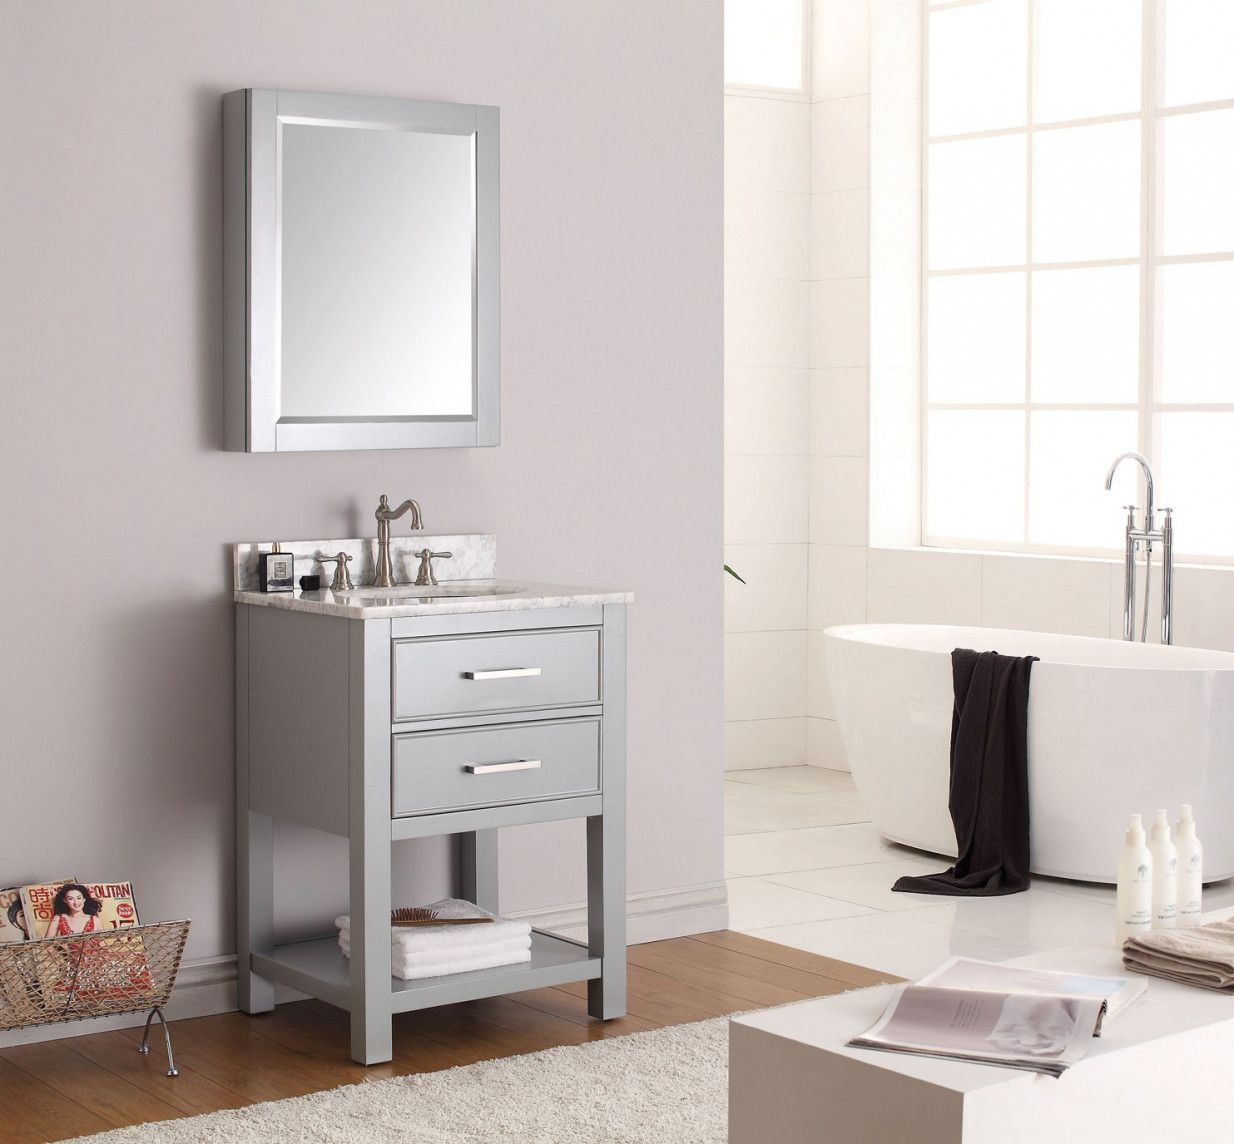 99+ Bathrooms Cabinets & Vanities - Best Paint for Interior Check ...